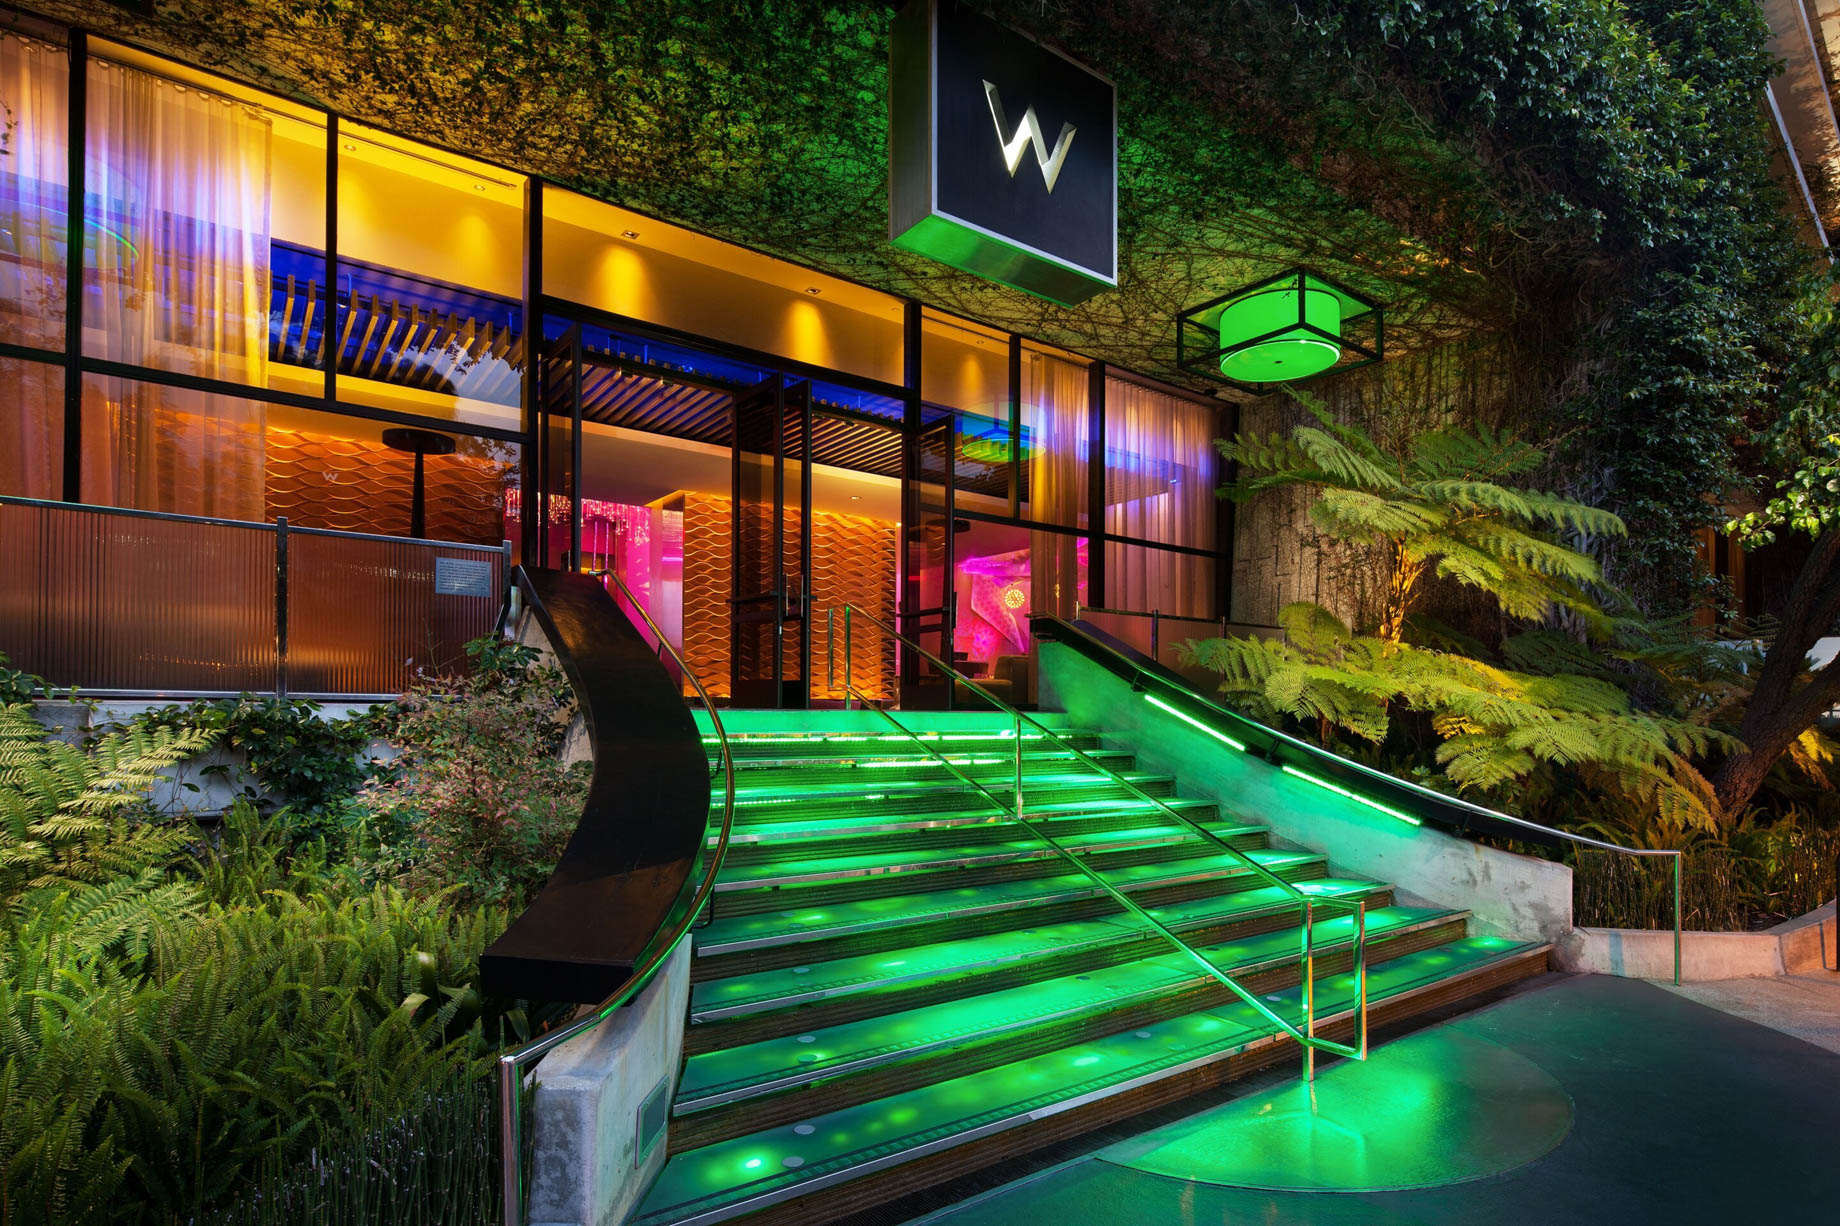 W Los Angeles West Beverly Hills Luxury Hotel - Los Angeles, CA, USA - Hotel Exterior Entrance